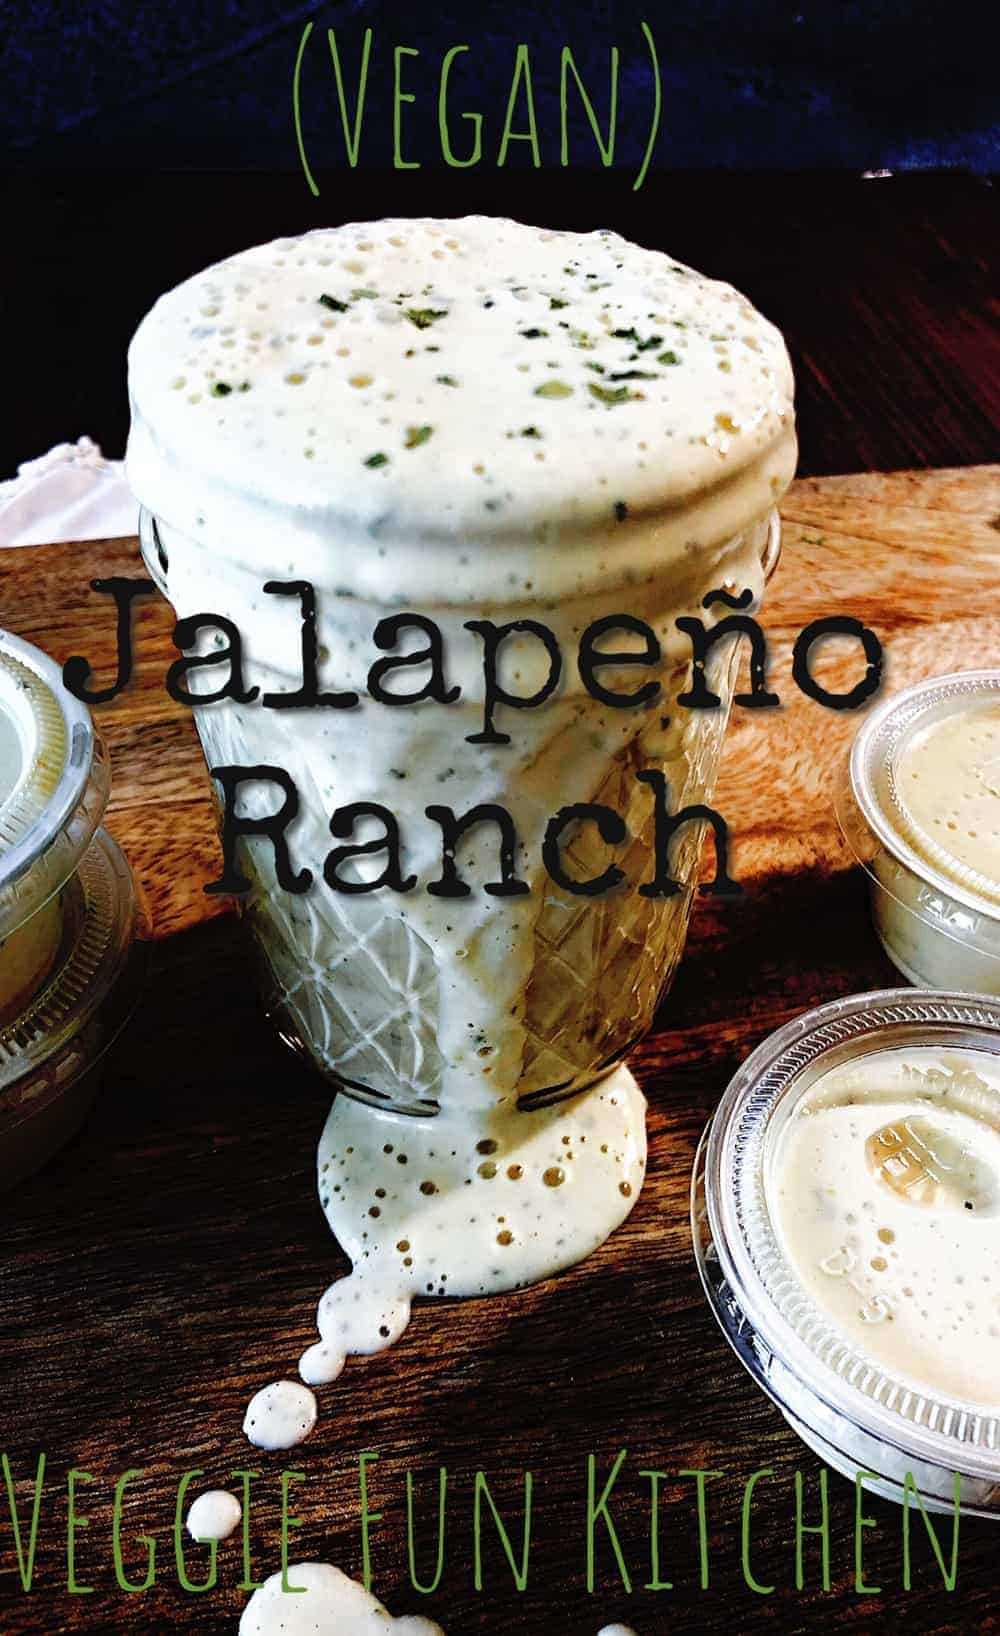 Jalapeno Ranch Dressing, Vegan and Oil-Free with text overlay